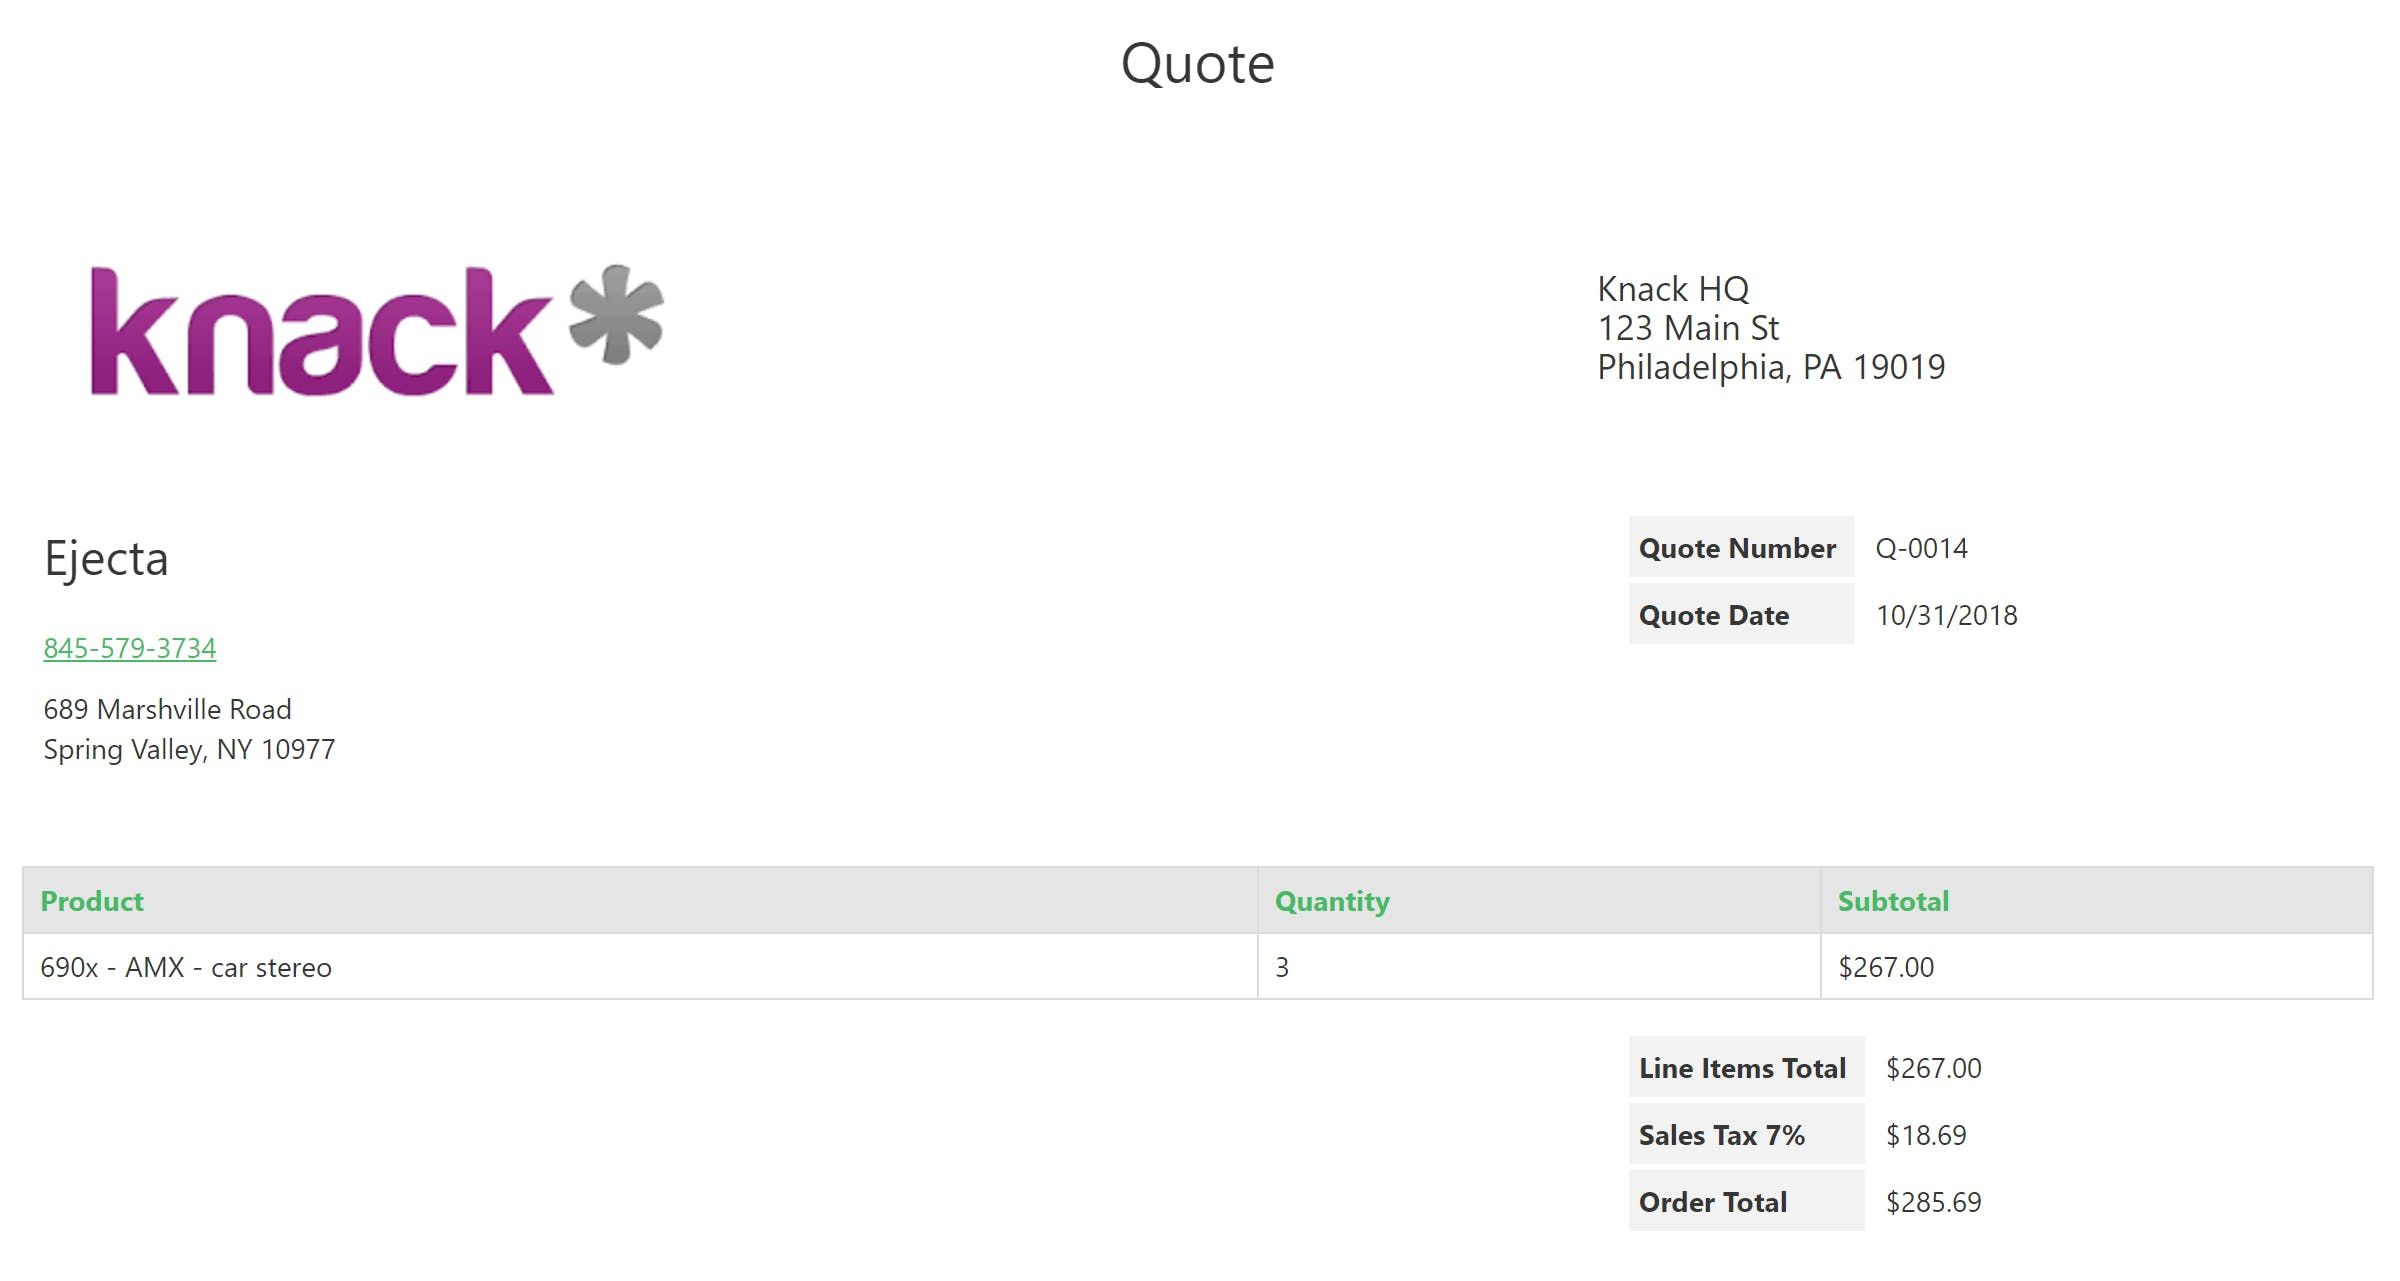 Create your own printable quote or order page with your logo and billing info.